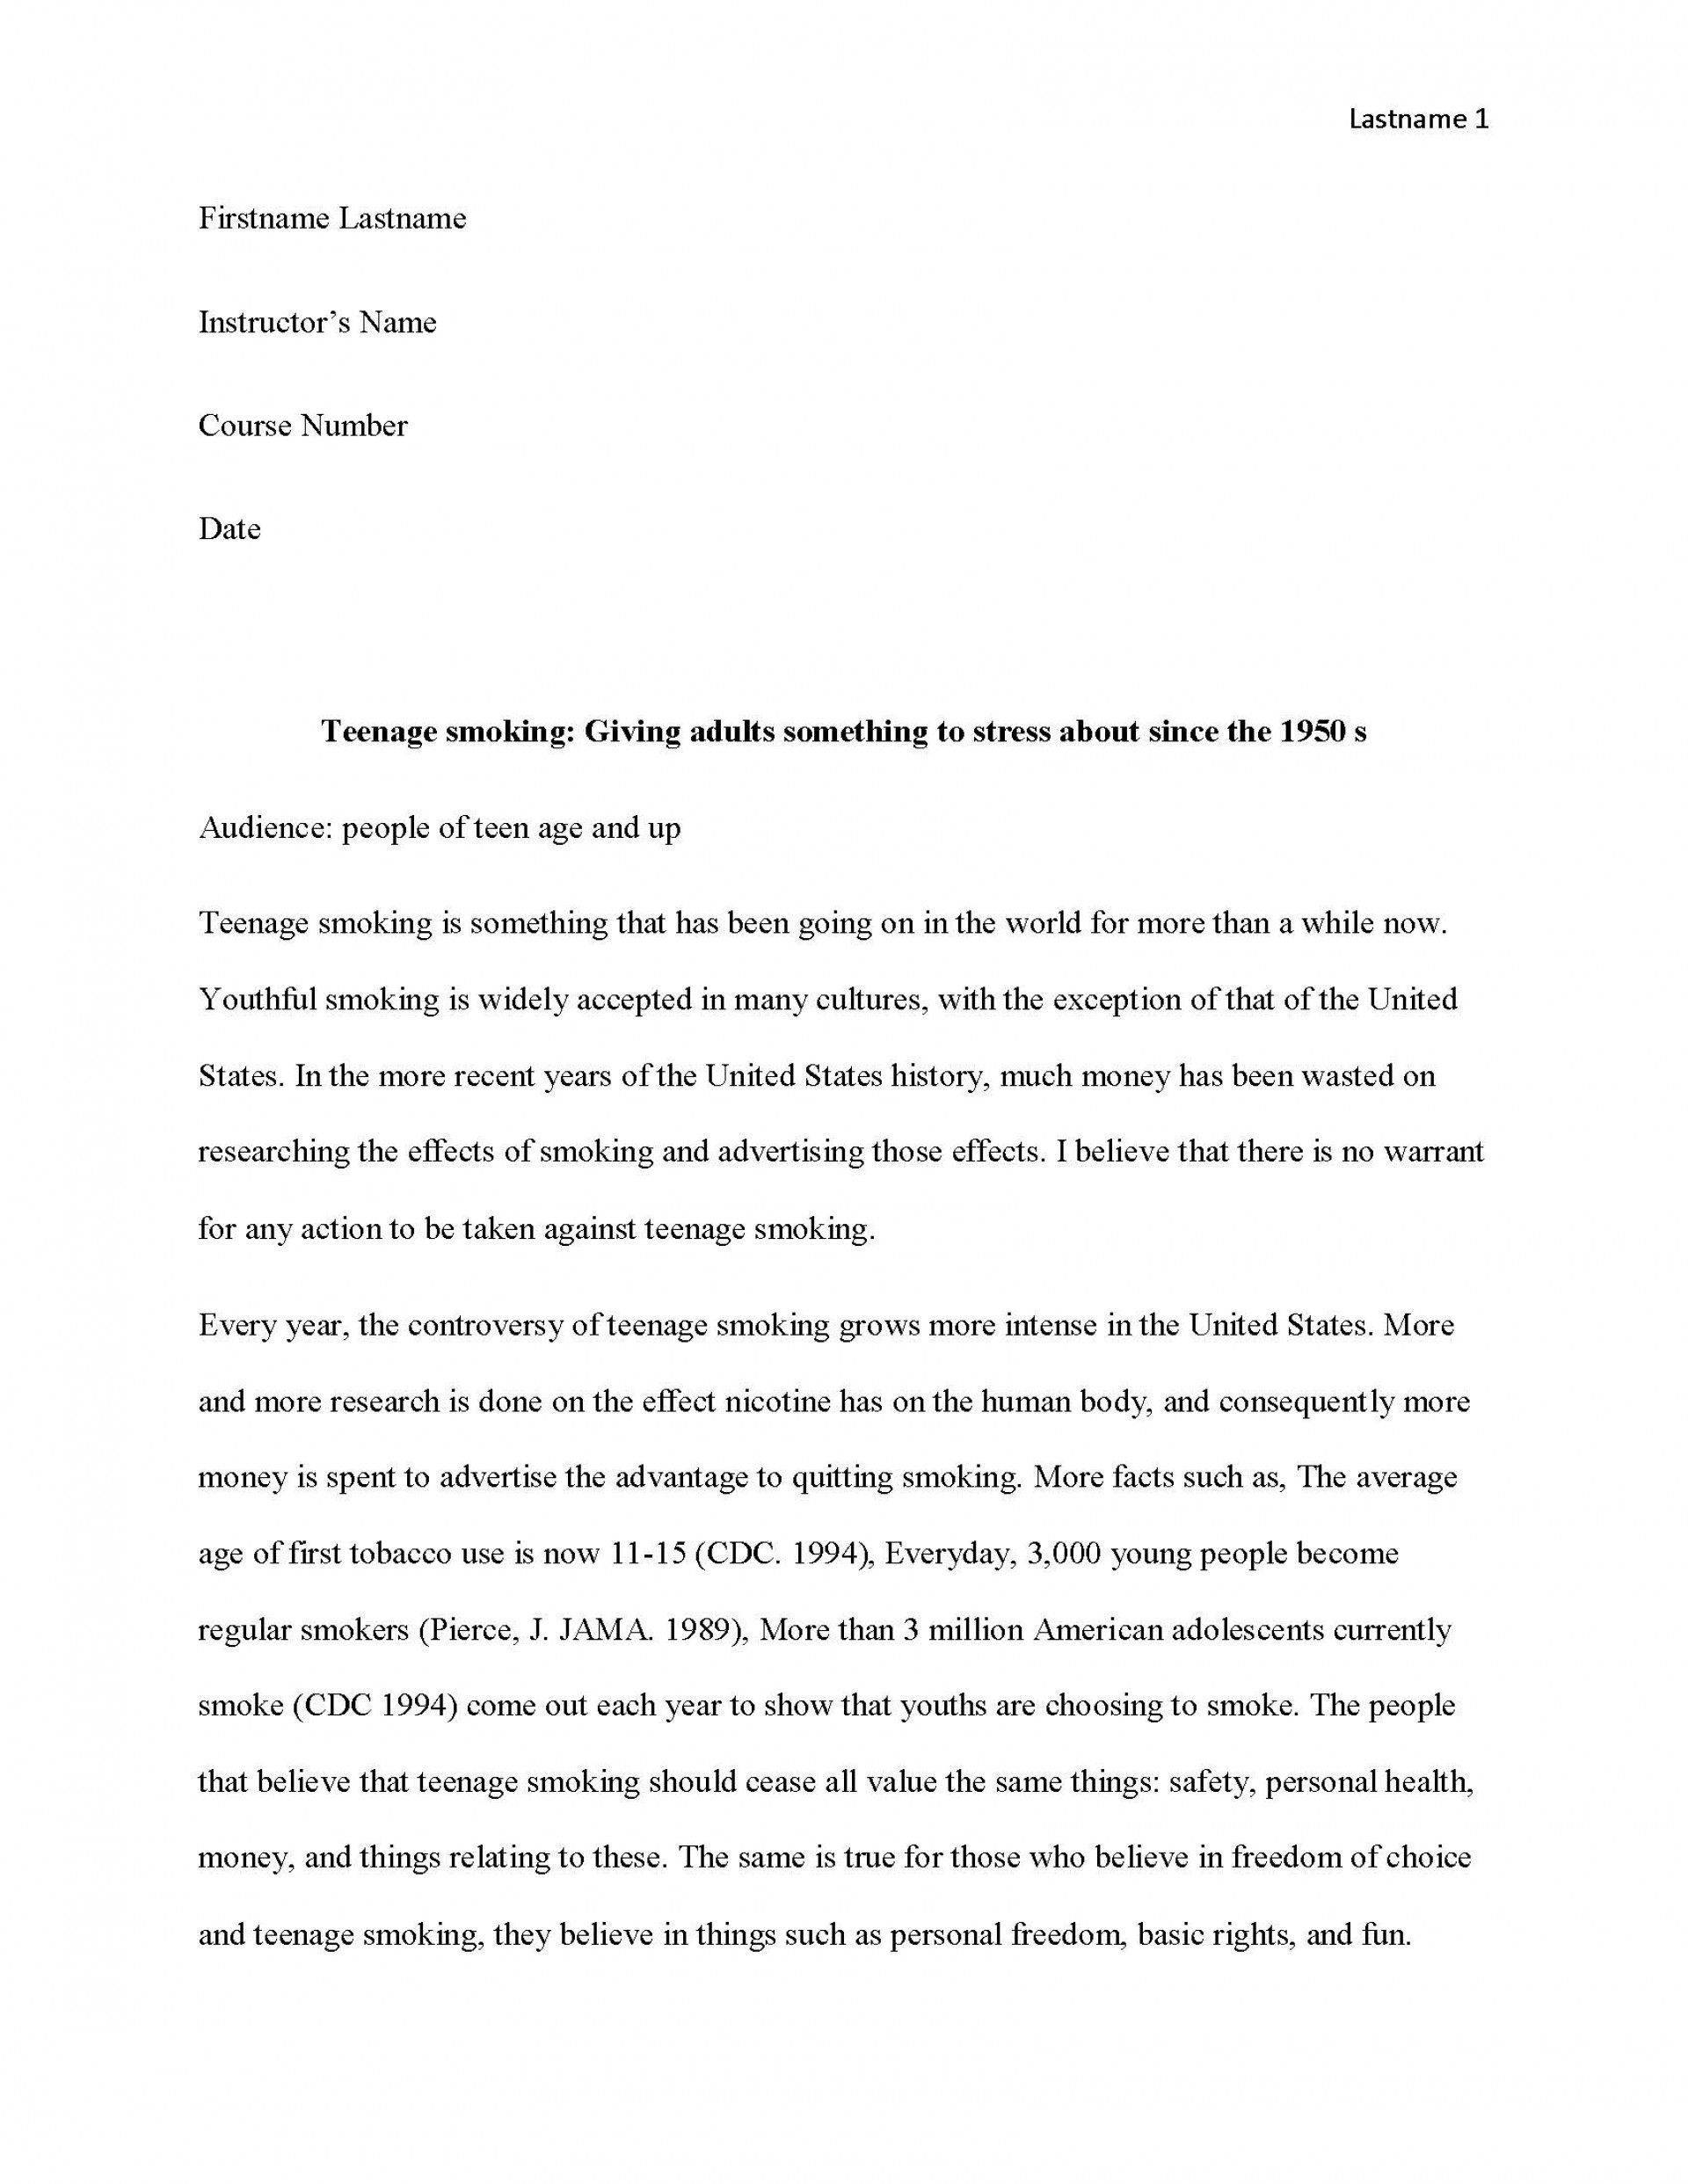 012 Writing Scholarship Essay Teen Smoking Free Sample Page 1 Excellent A Good Keys To Winning 1920